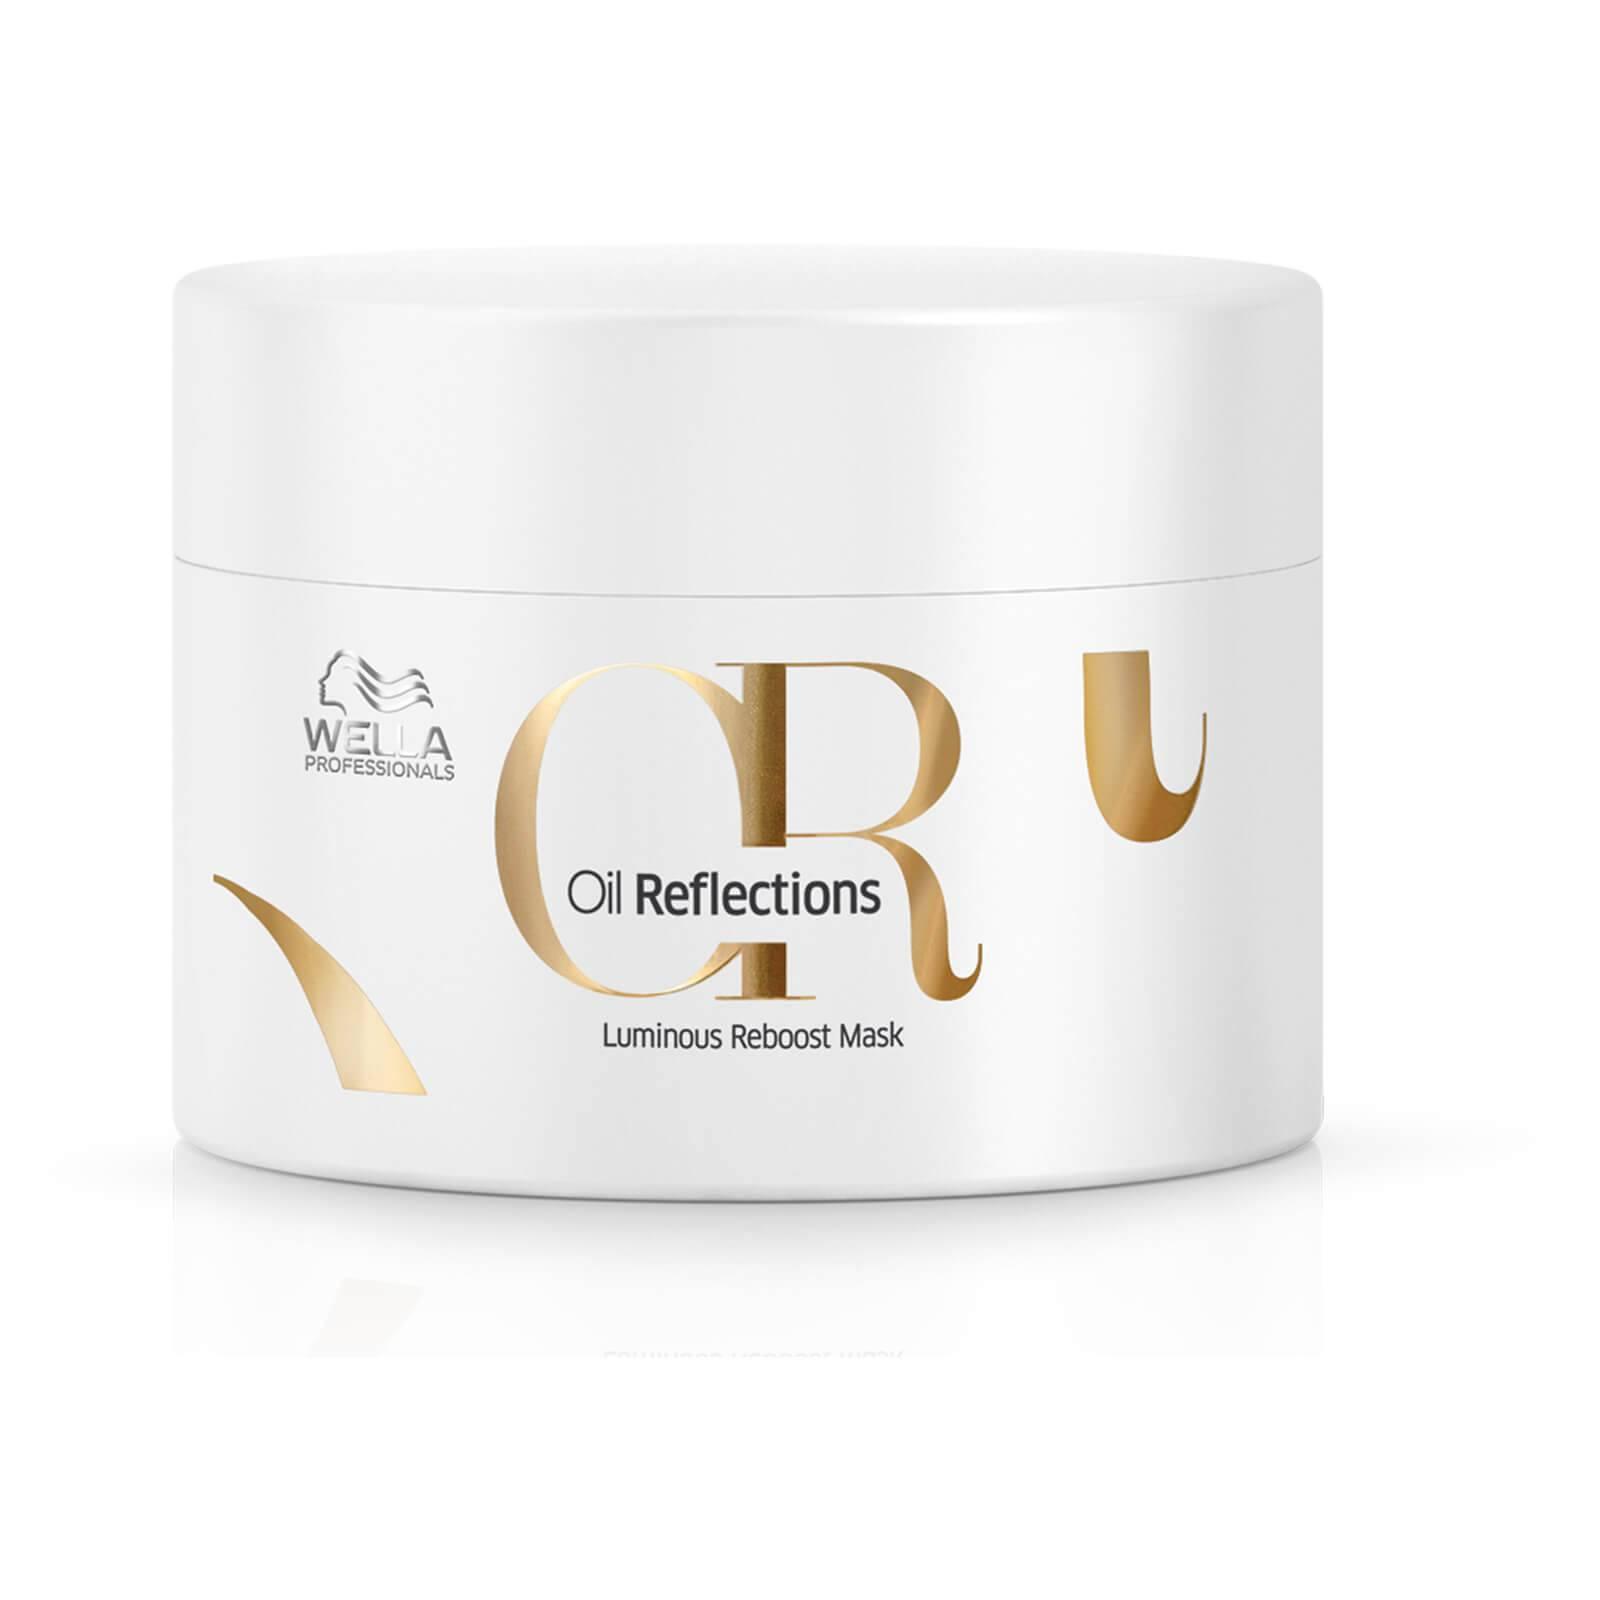 Wella Professionals Care Masque Nourrissant Lumineux Luminous Reboost Mask Oil Reflections Wella Professionals Care 150 ml